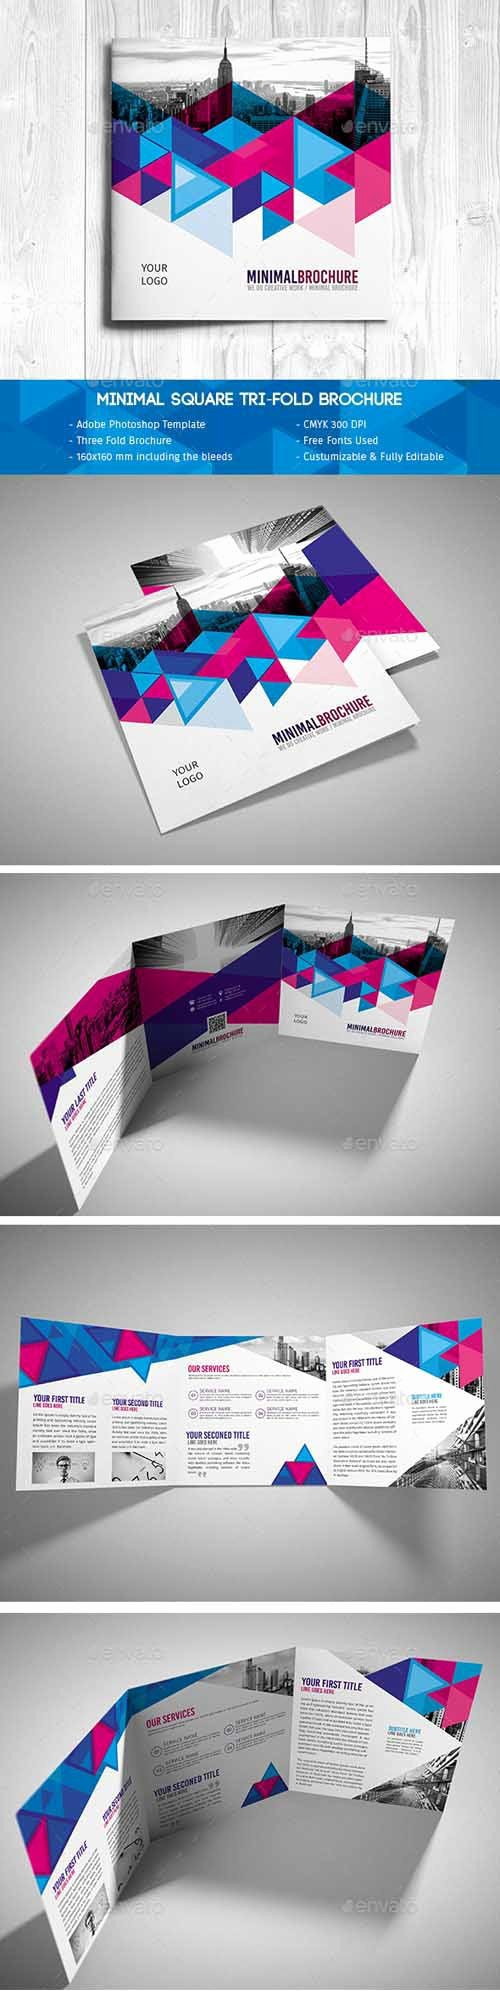 Square Trifold Brochure Template Awesome Minimal Square Tri Fold Brochure Psd Template Psd